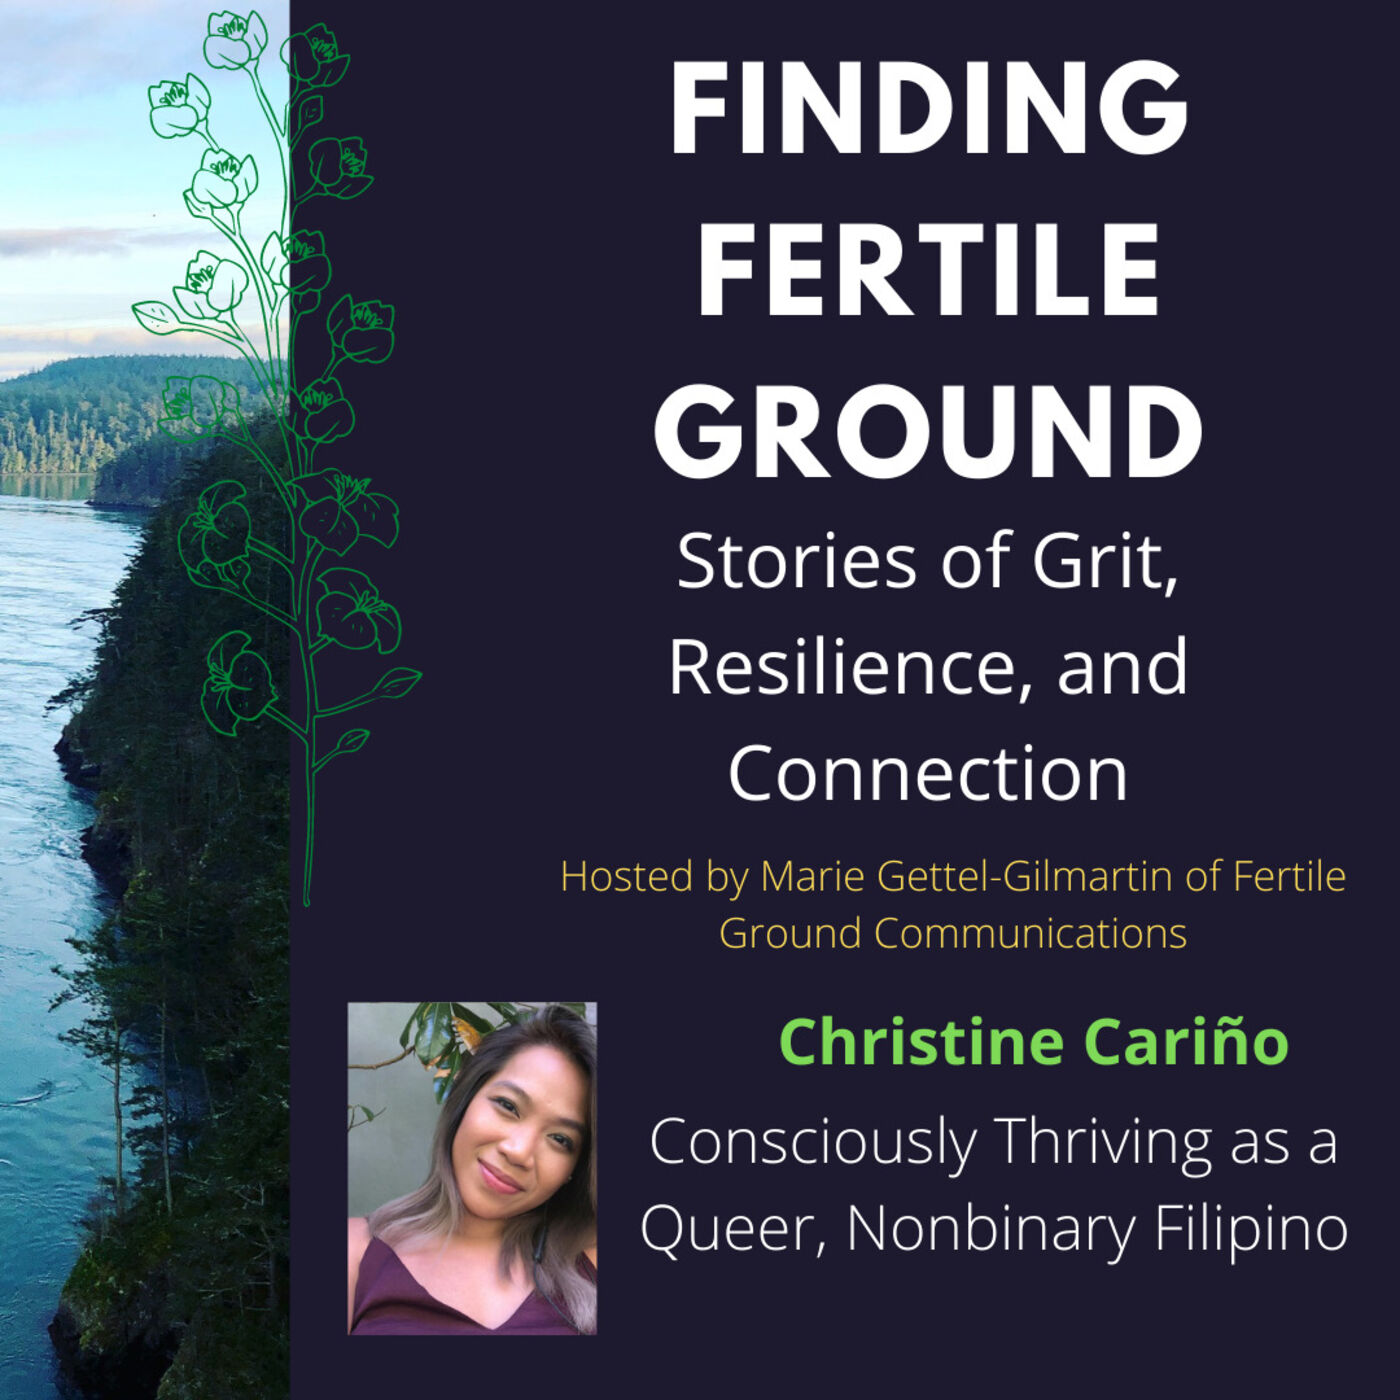 Christine Cariño: Consciously Thriving as a Queer, Nonbinary Filipino